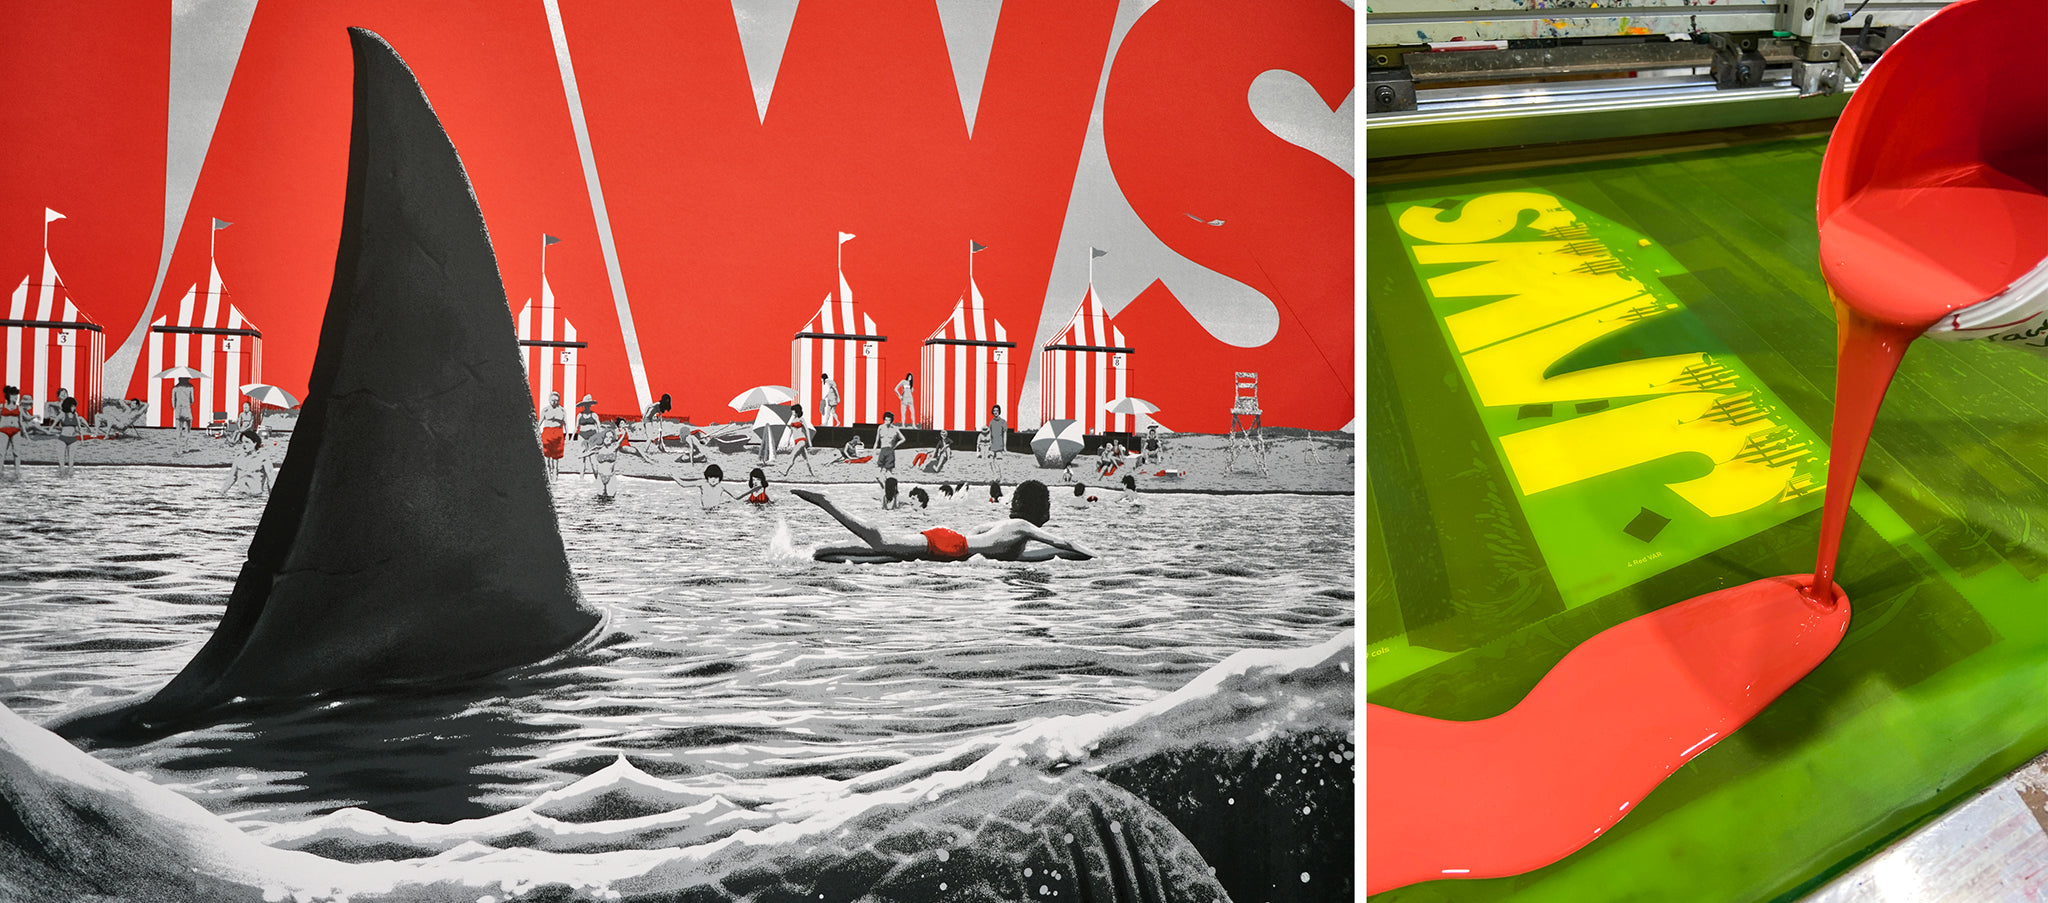 Jaws screen print edition by Florrey printed by White Duck Editions for Vice Press and Bottleneck Gallery